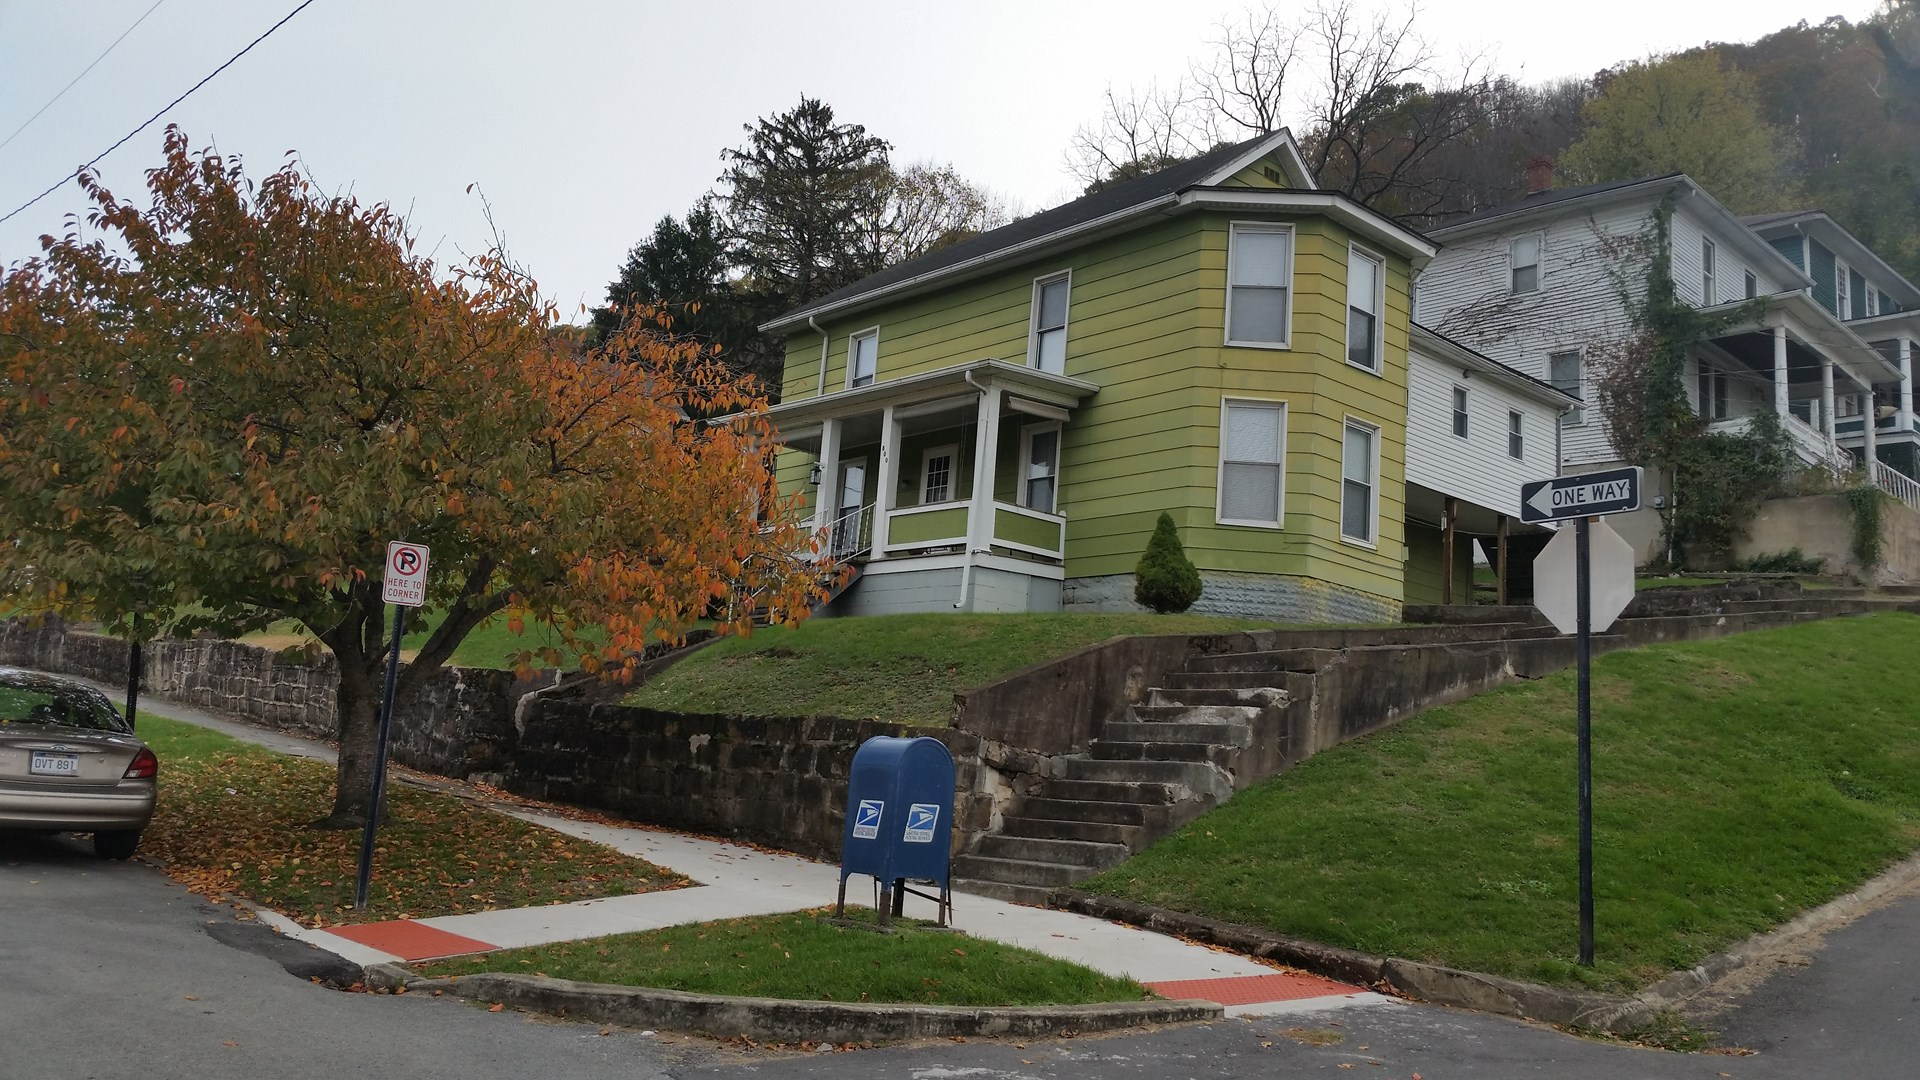 HISTORIC TWO STORY HOME IN HINTON, WV